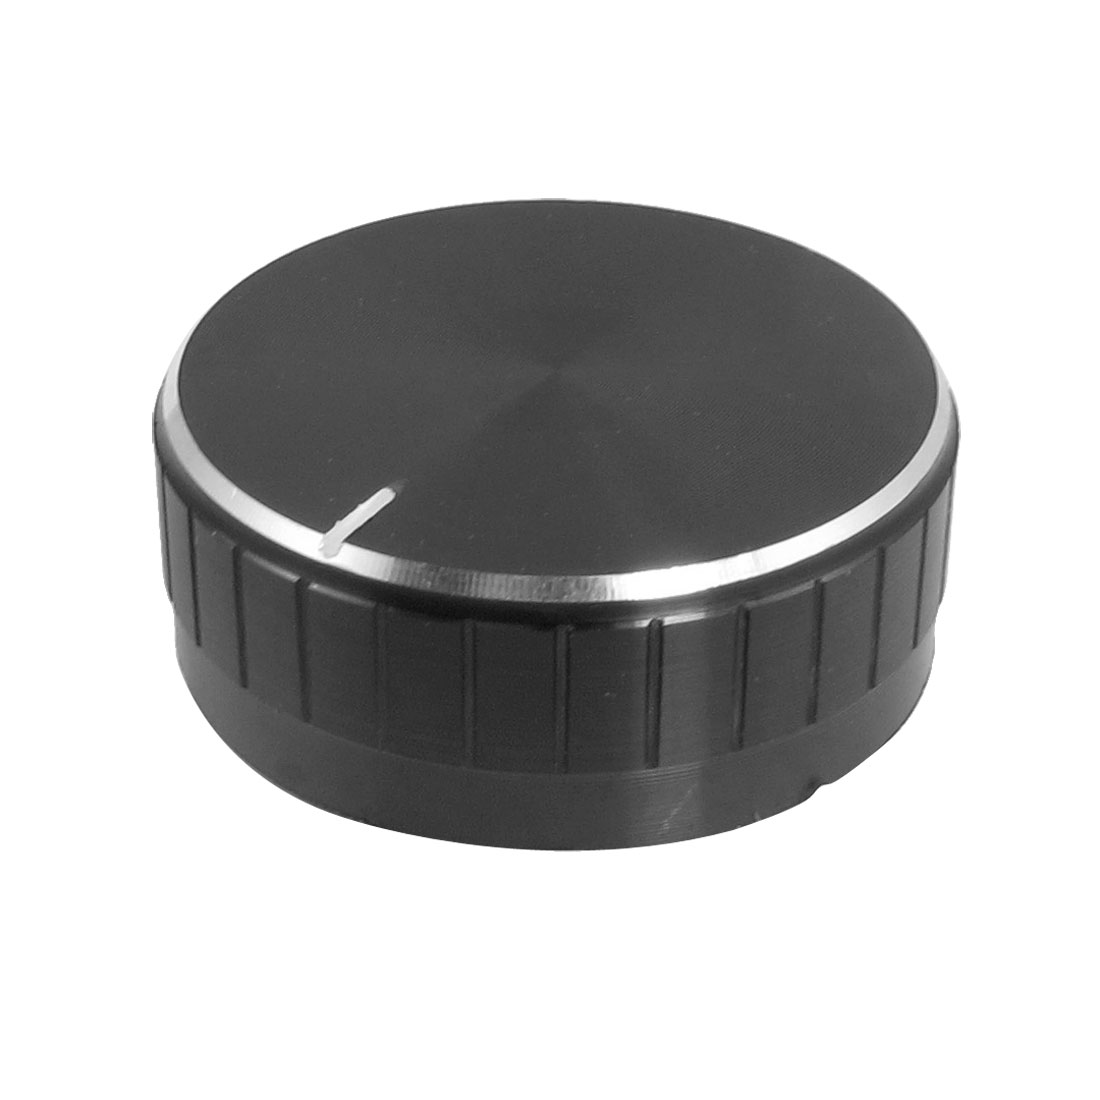 Replacement 48mm x 18mm PU Interior Black Aluminum Knob for Amplifier